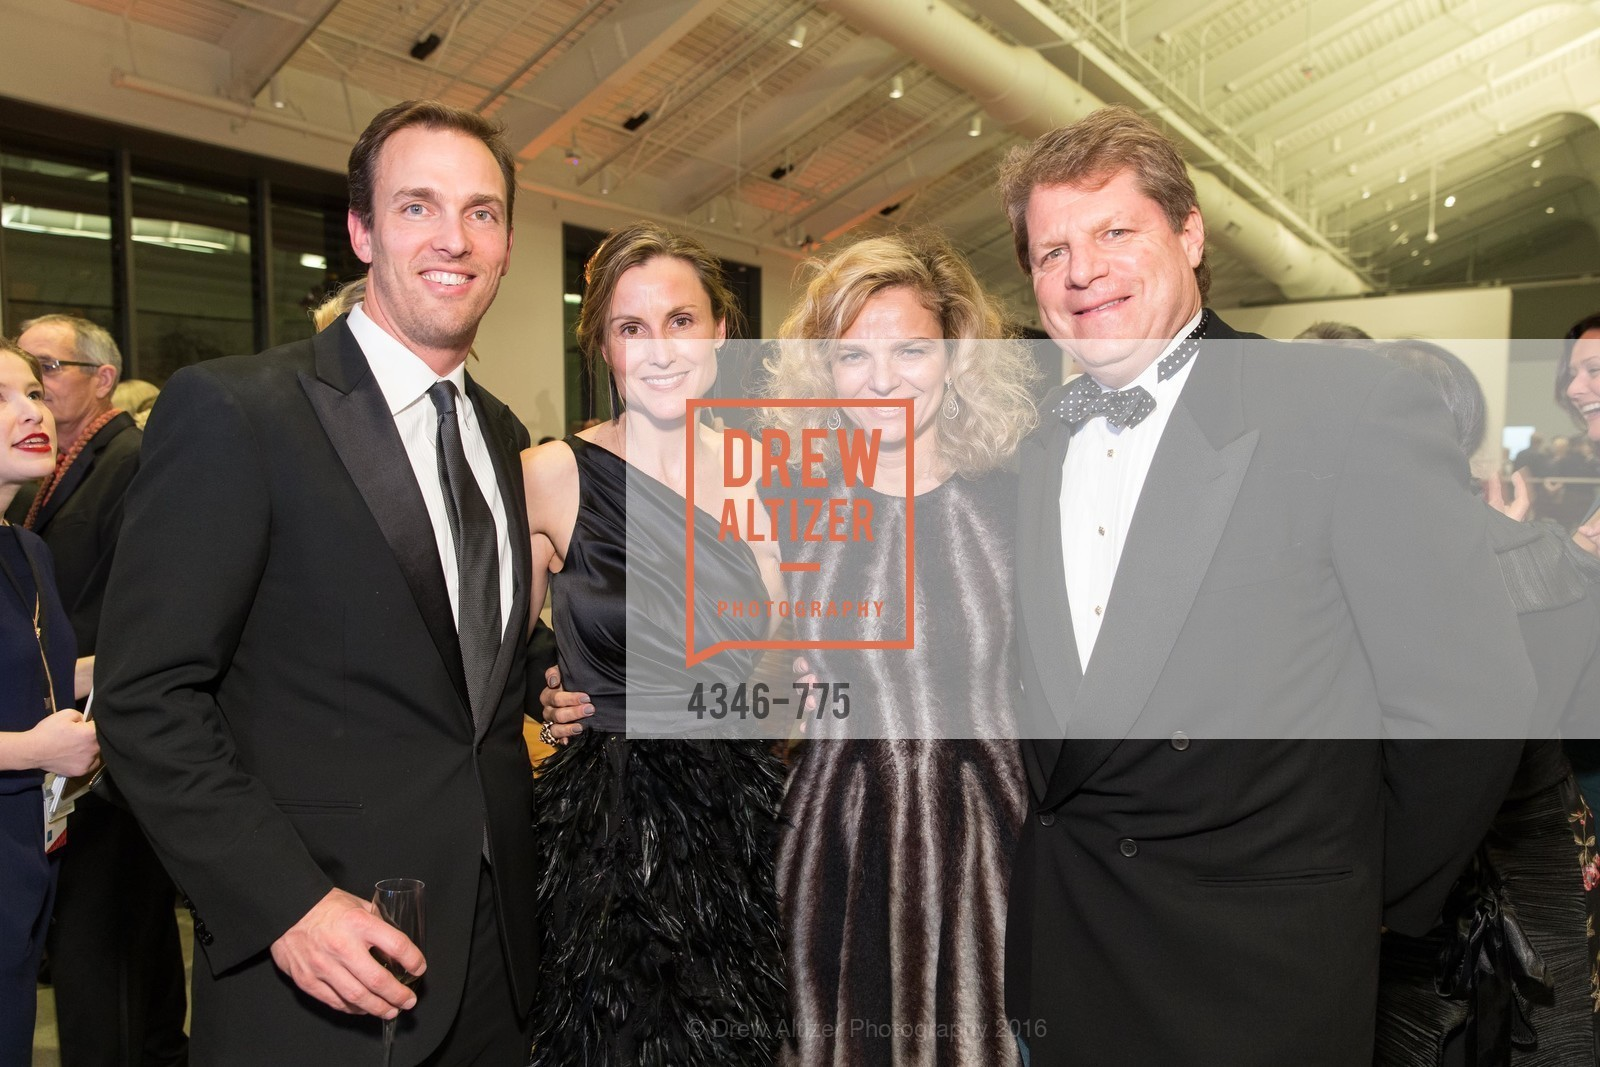 Alec Perkins, Serena Perkins, Leigh Matthes, Bill Matthes, UC Berkeley Art Museum & Pacific Film Archive Gala, BAMPFA. 2120 Oxford Street, January 28th, 2016,Drew Altizer, Drew Altizer Photography, full-service agency, private events, San Francisco photographer, photographer california